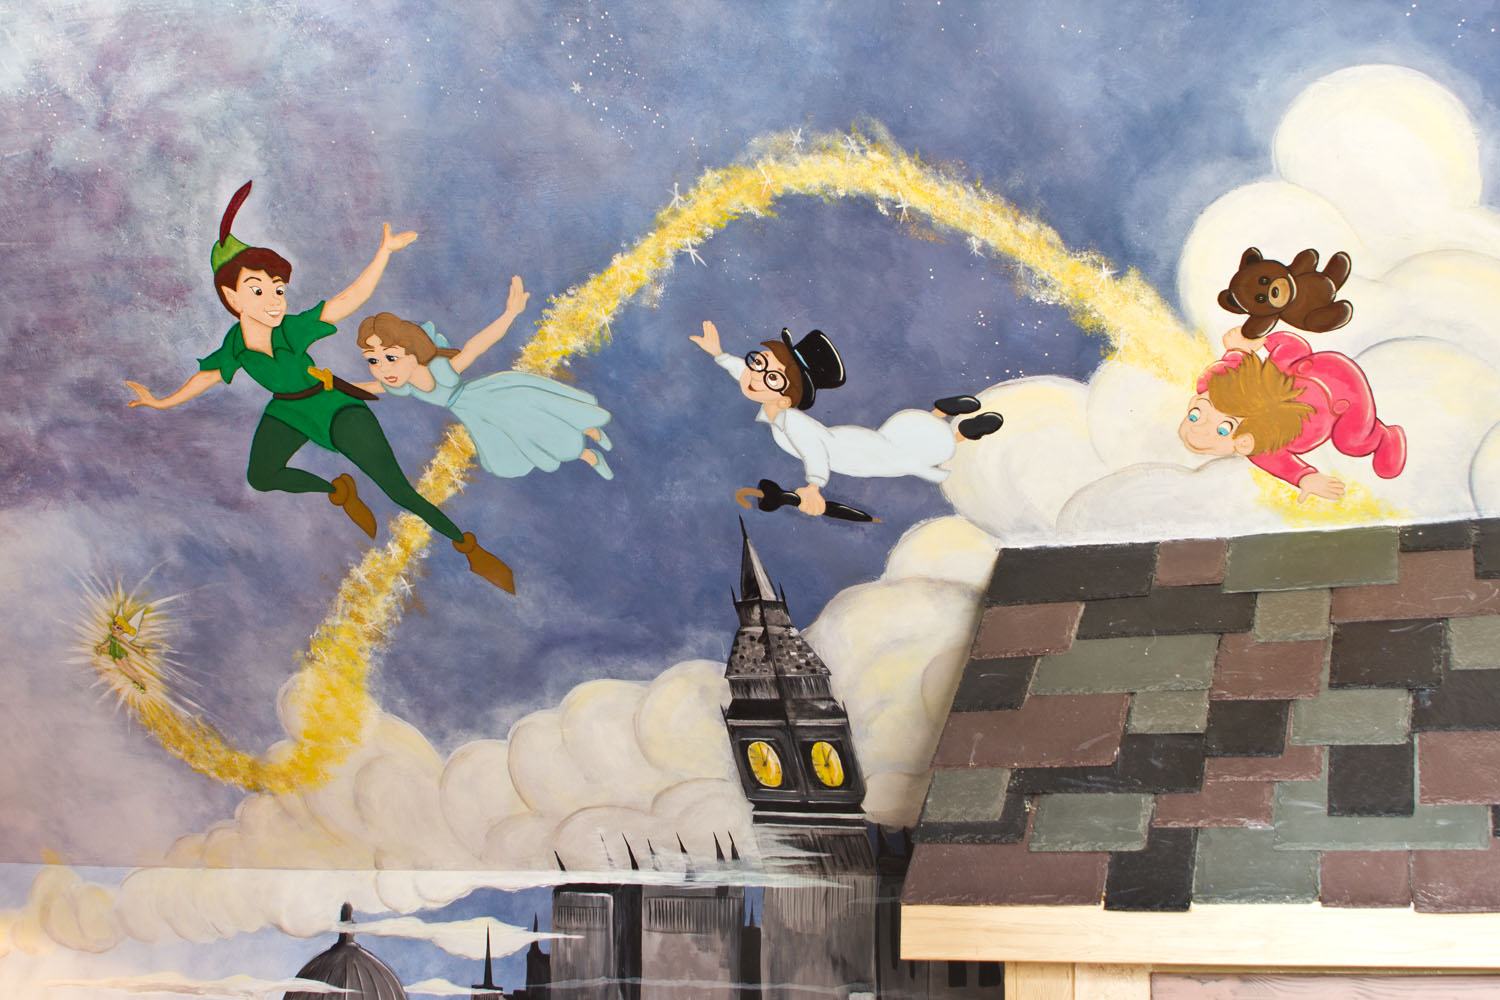 28 peter pan wall mural peter pan mural tinkerbell disney peter pan wall mural peter pan wall murals cassidy tuttle photography